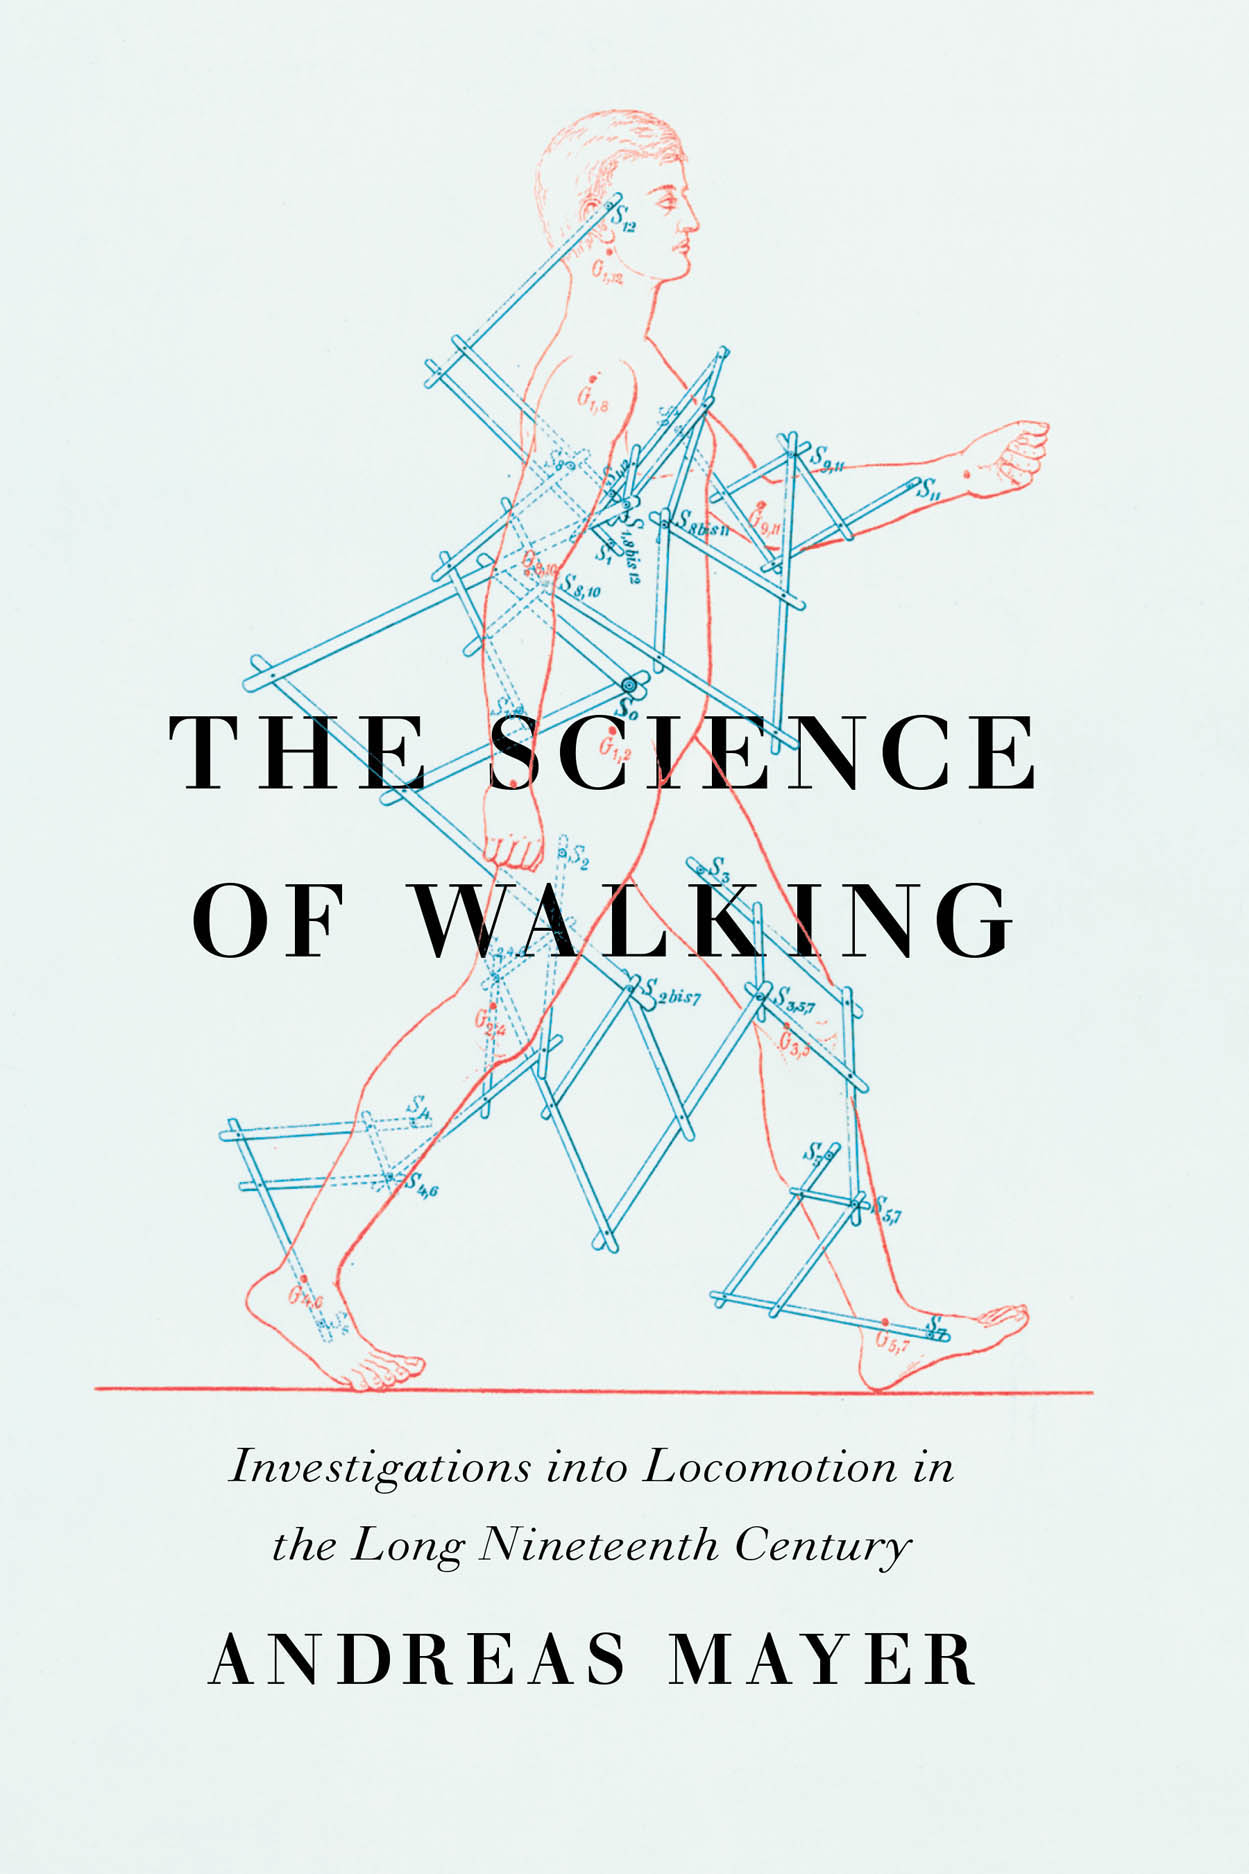 The Science of Walking: Investigations into Locomotion in the Long Nineteenth Century